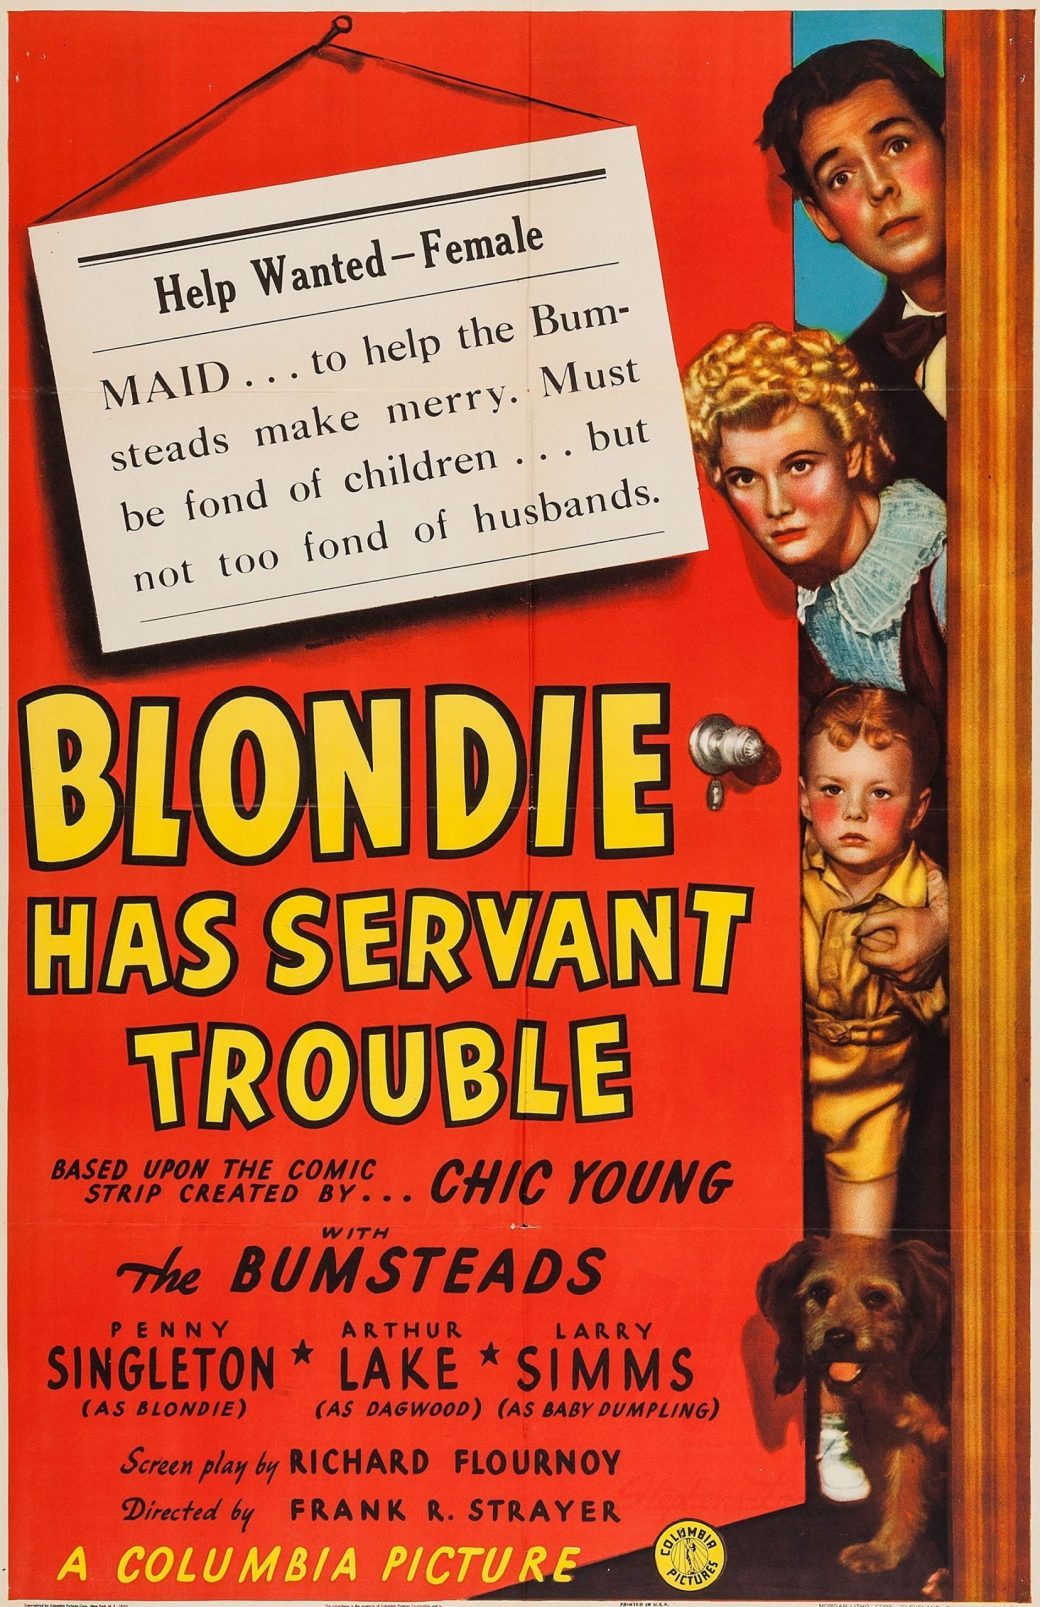 Filmen Blondie has servant trouble